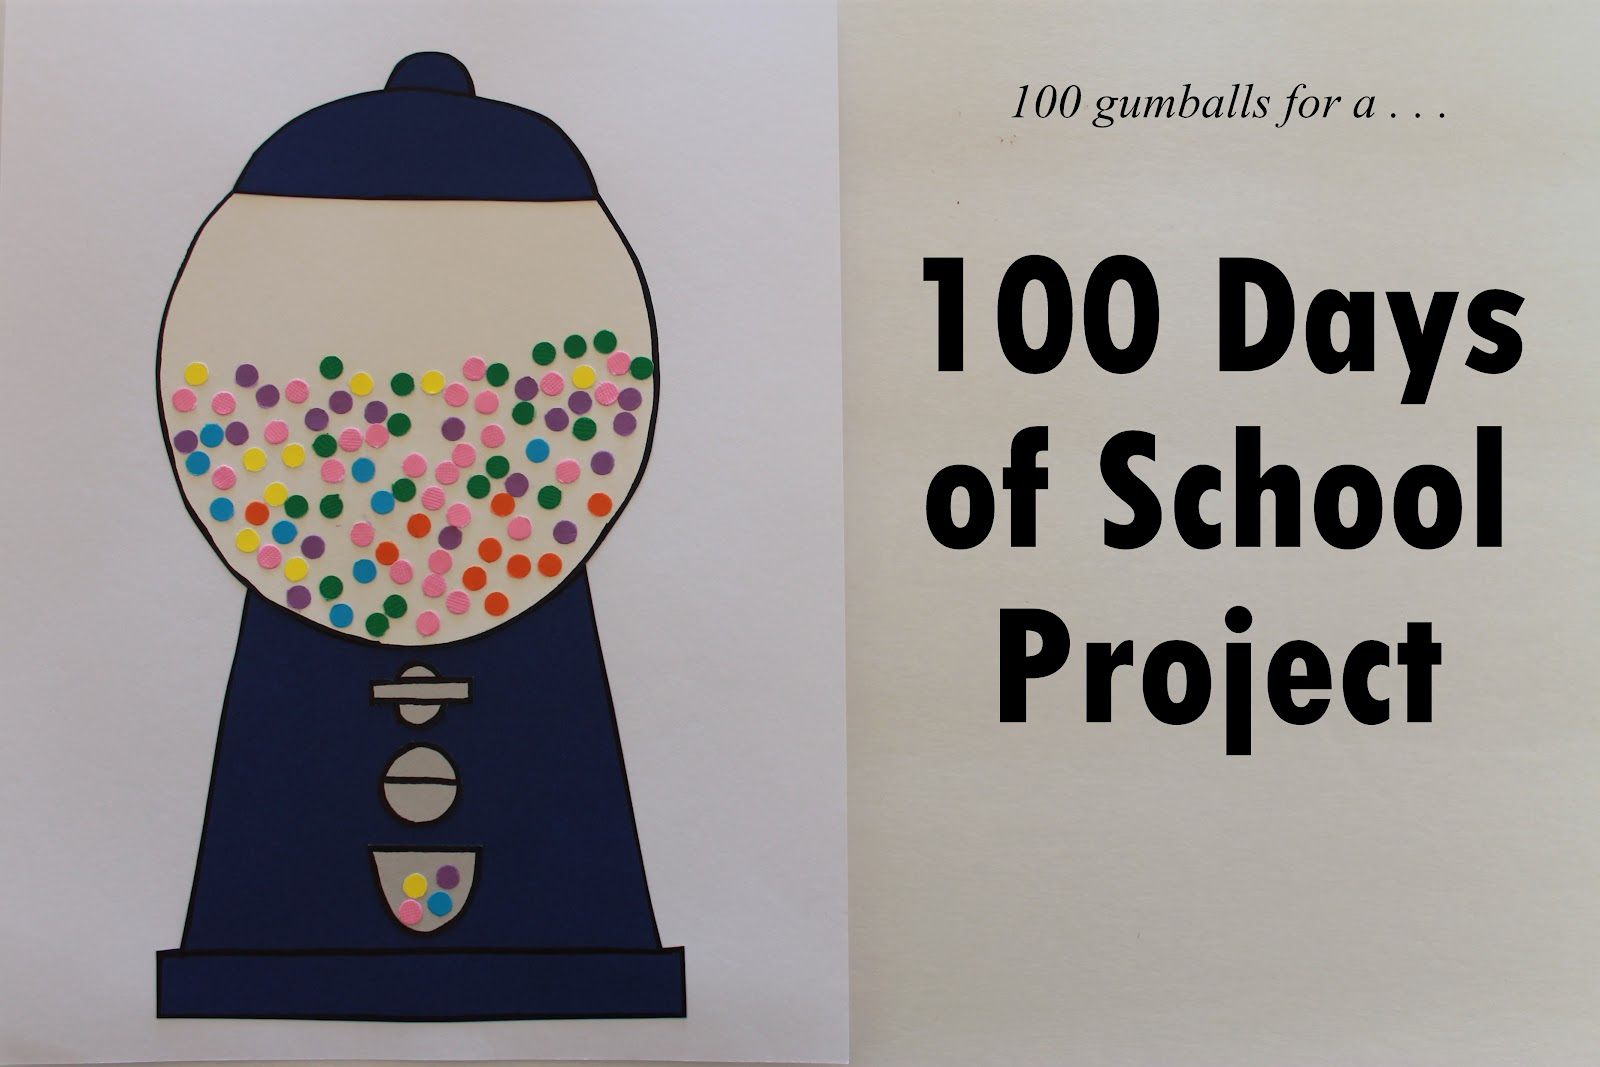 School days project